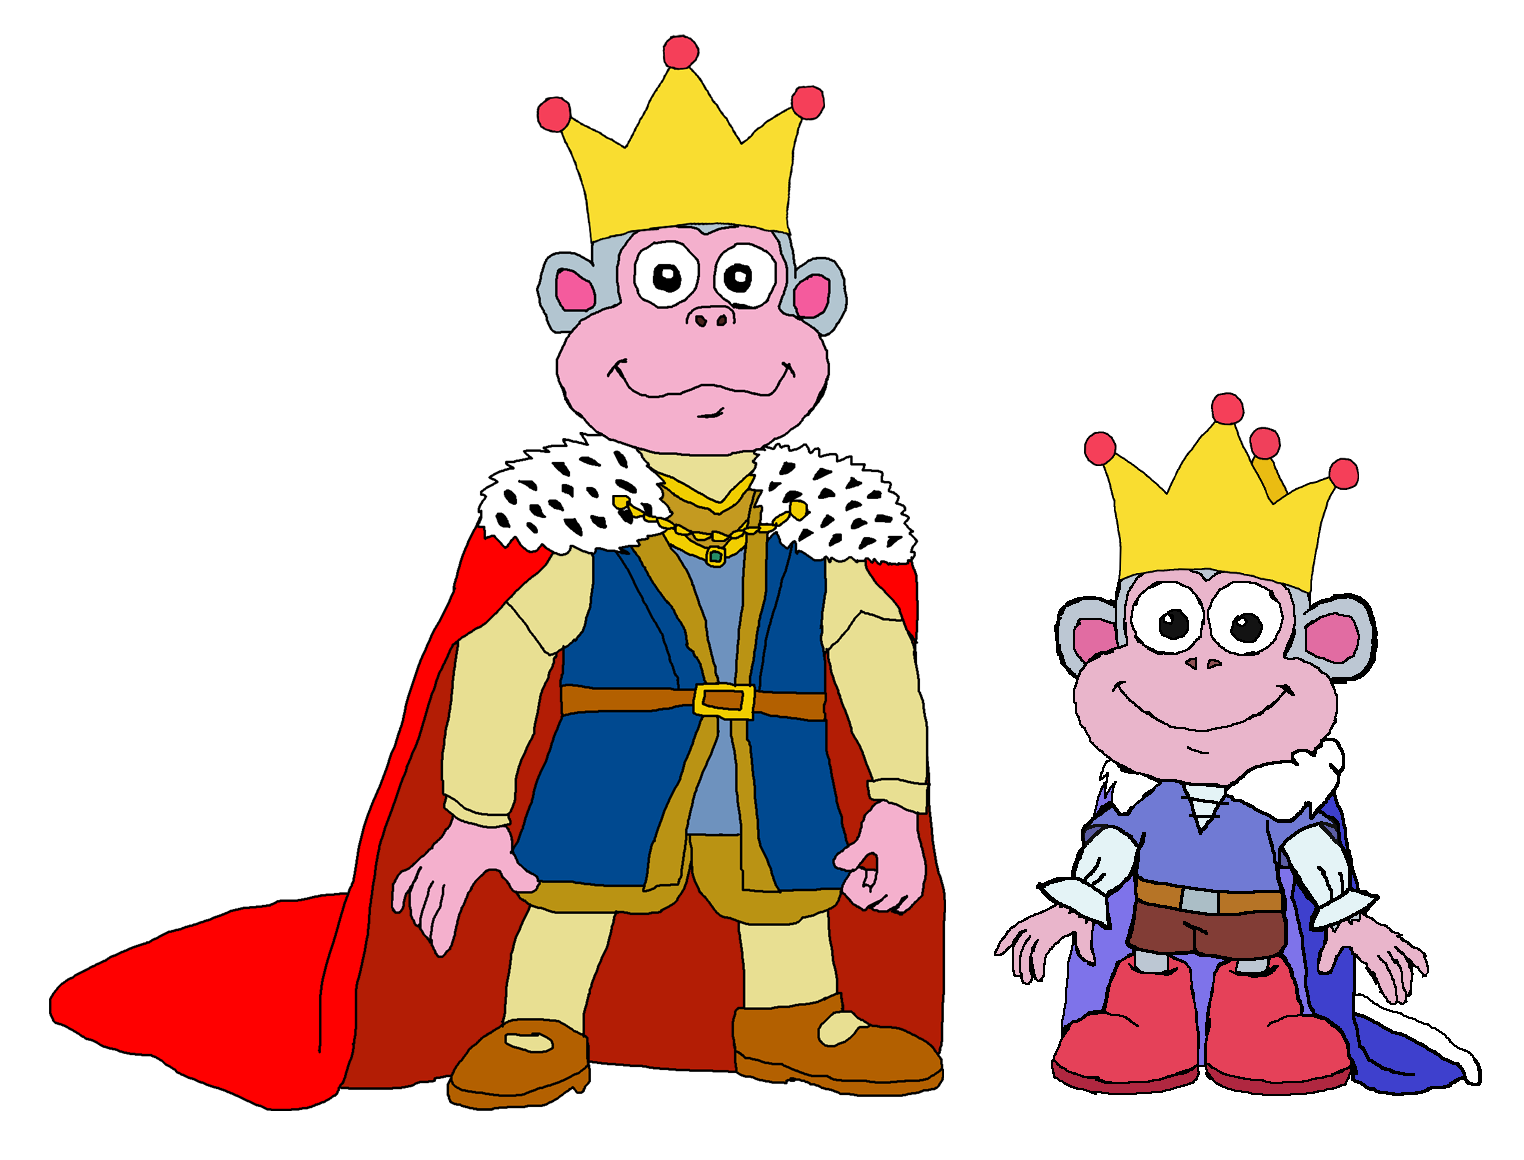 King Boots' Dad and Prince Boots